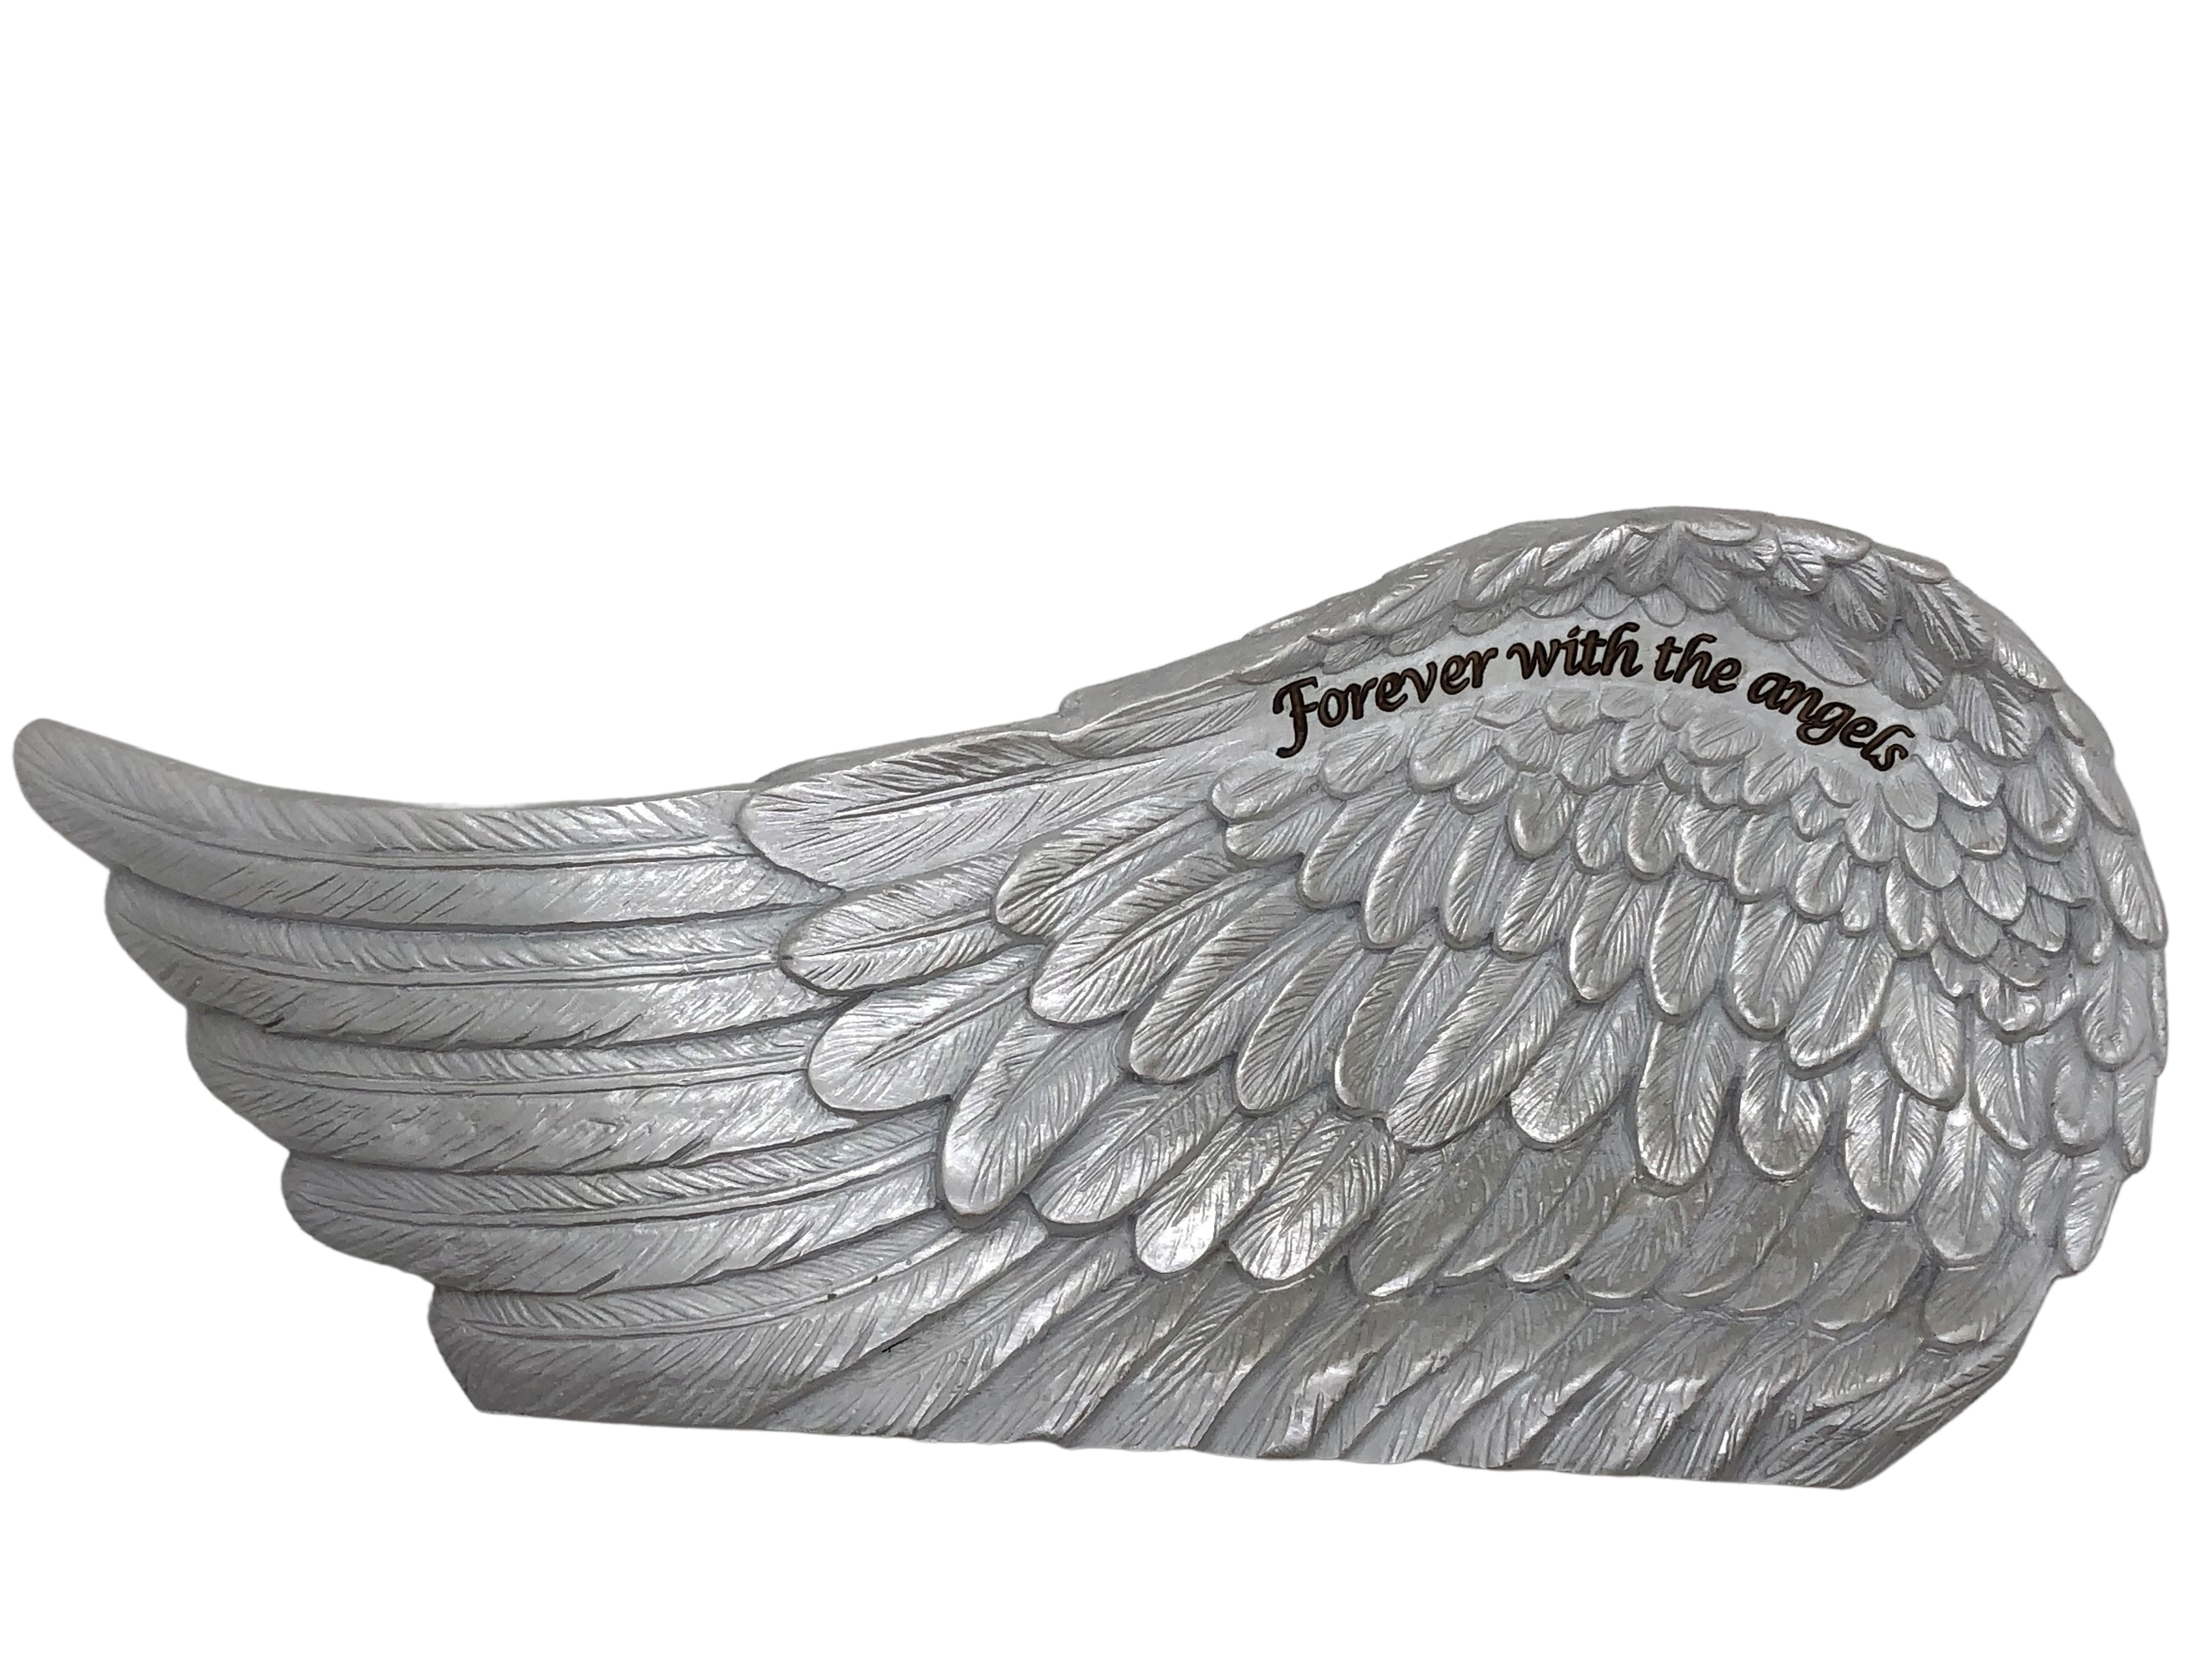 Pearl Finished Angel Wing ~ Forever with the angels